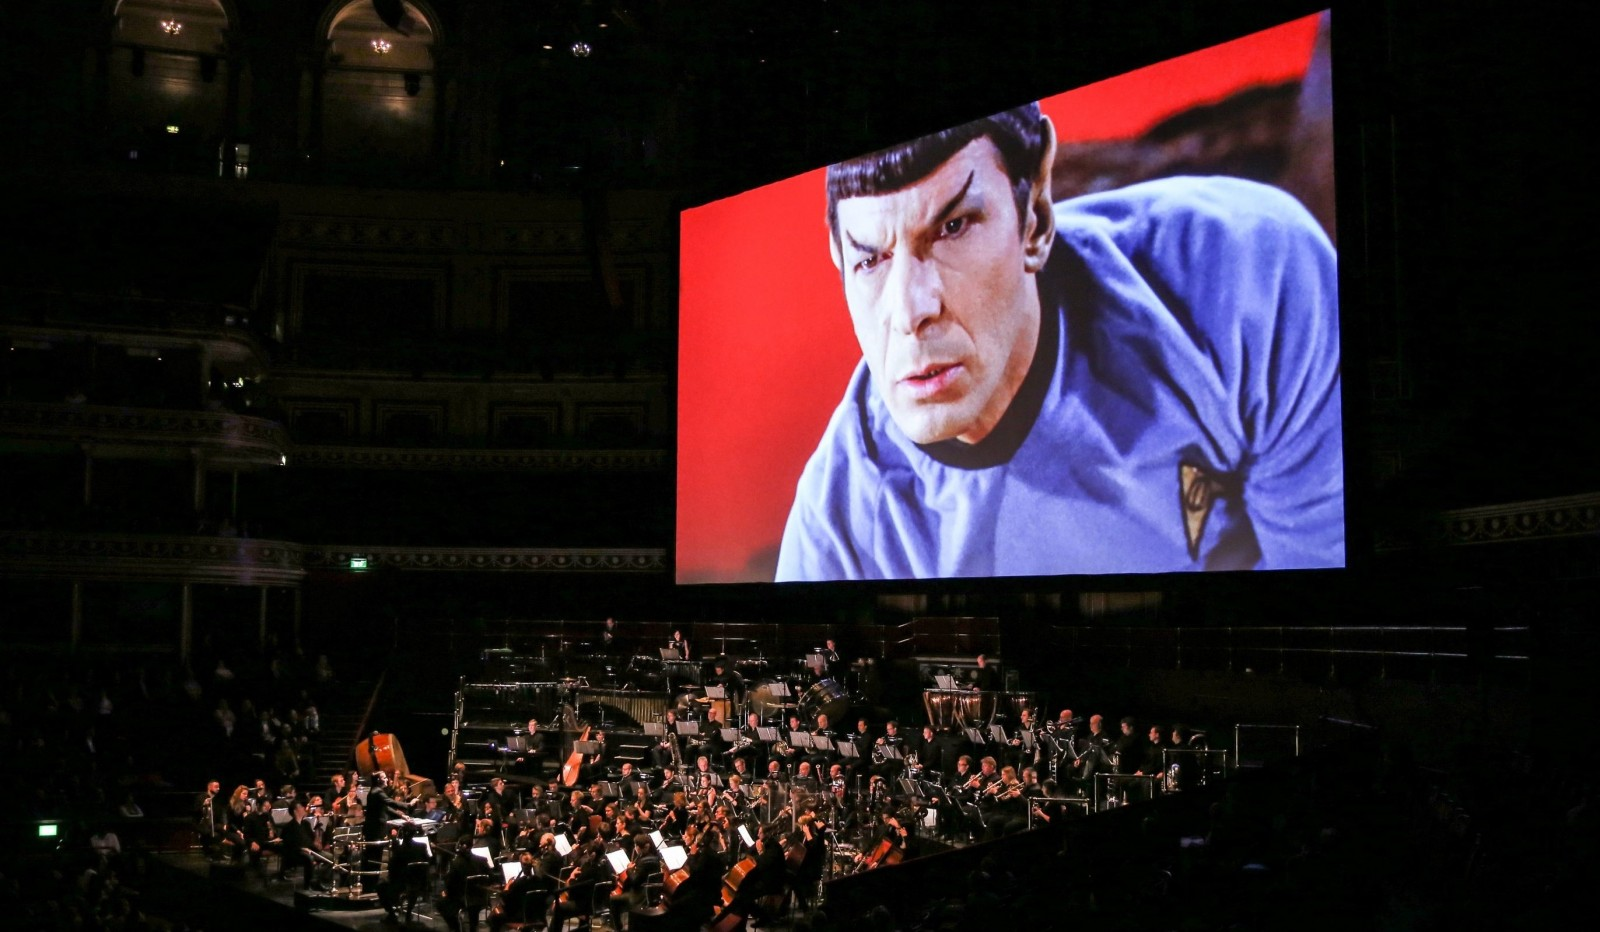 """Star Trek: The Ultimate Voyage"" will be held at 8 p.m. Saturday in Shea's Performing Arts Center."